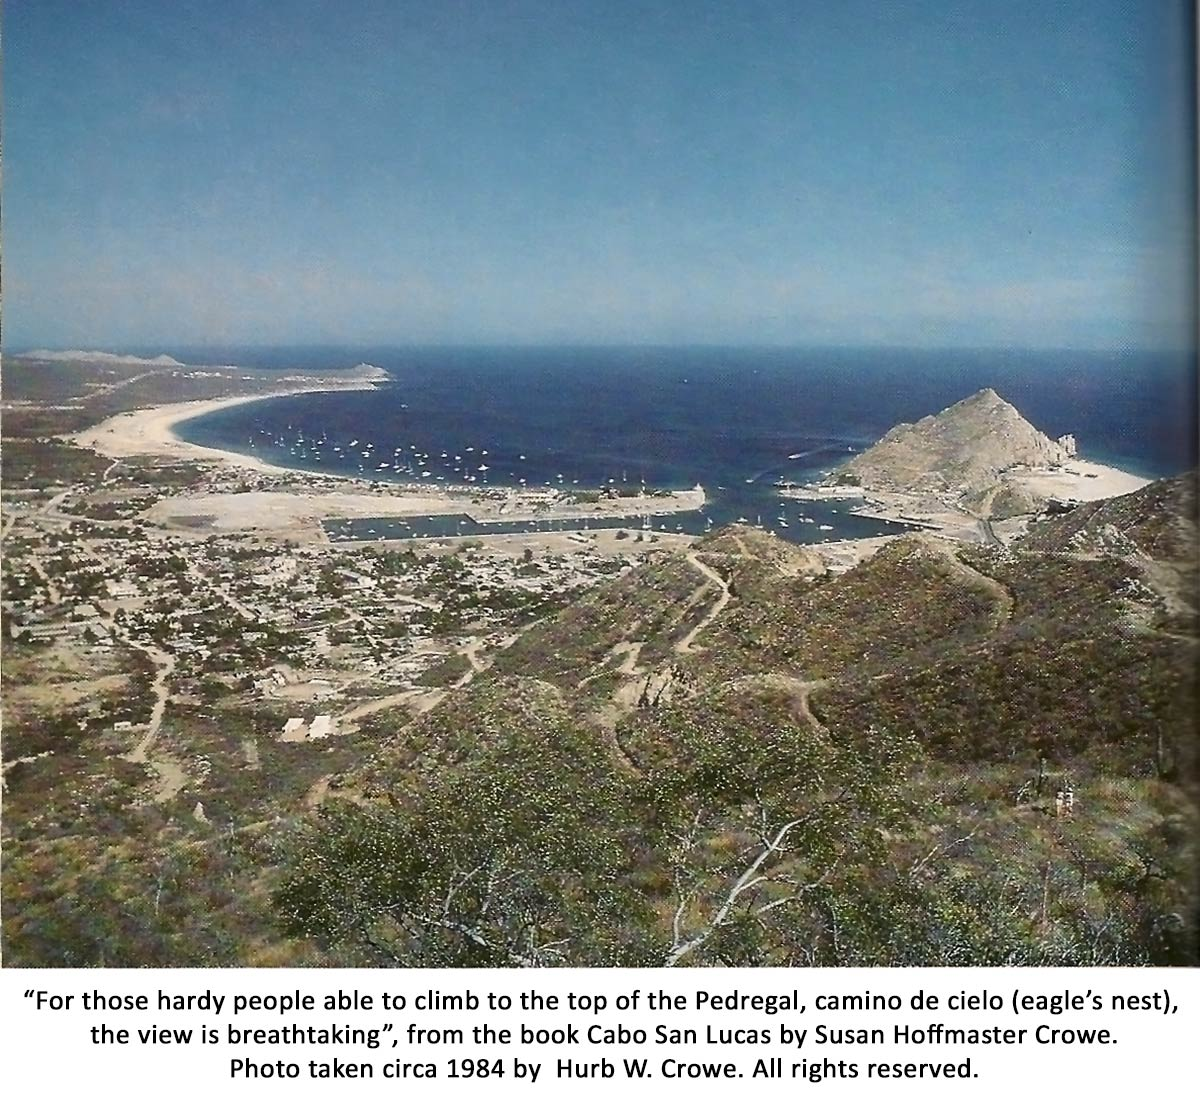 """For those hardy people able to climb to the top of the Pedregal, camino de cielo (eagle's nest),  the view is breathtaking"", from the book Cabo San Lucas by Susan Hoffmaster Crowe. Photo taken circa 1984 by  Hurb W. Crowe. All rights reserved."